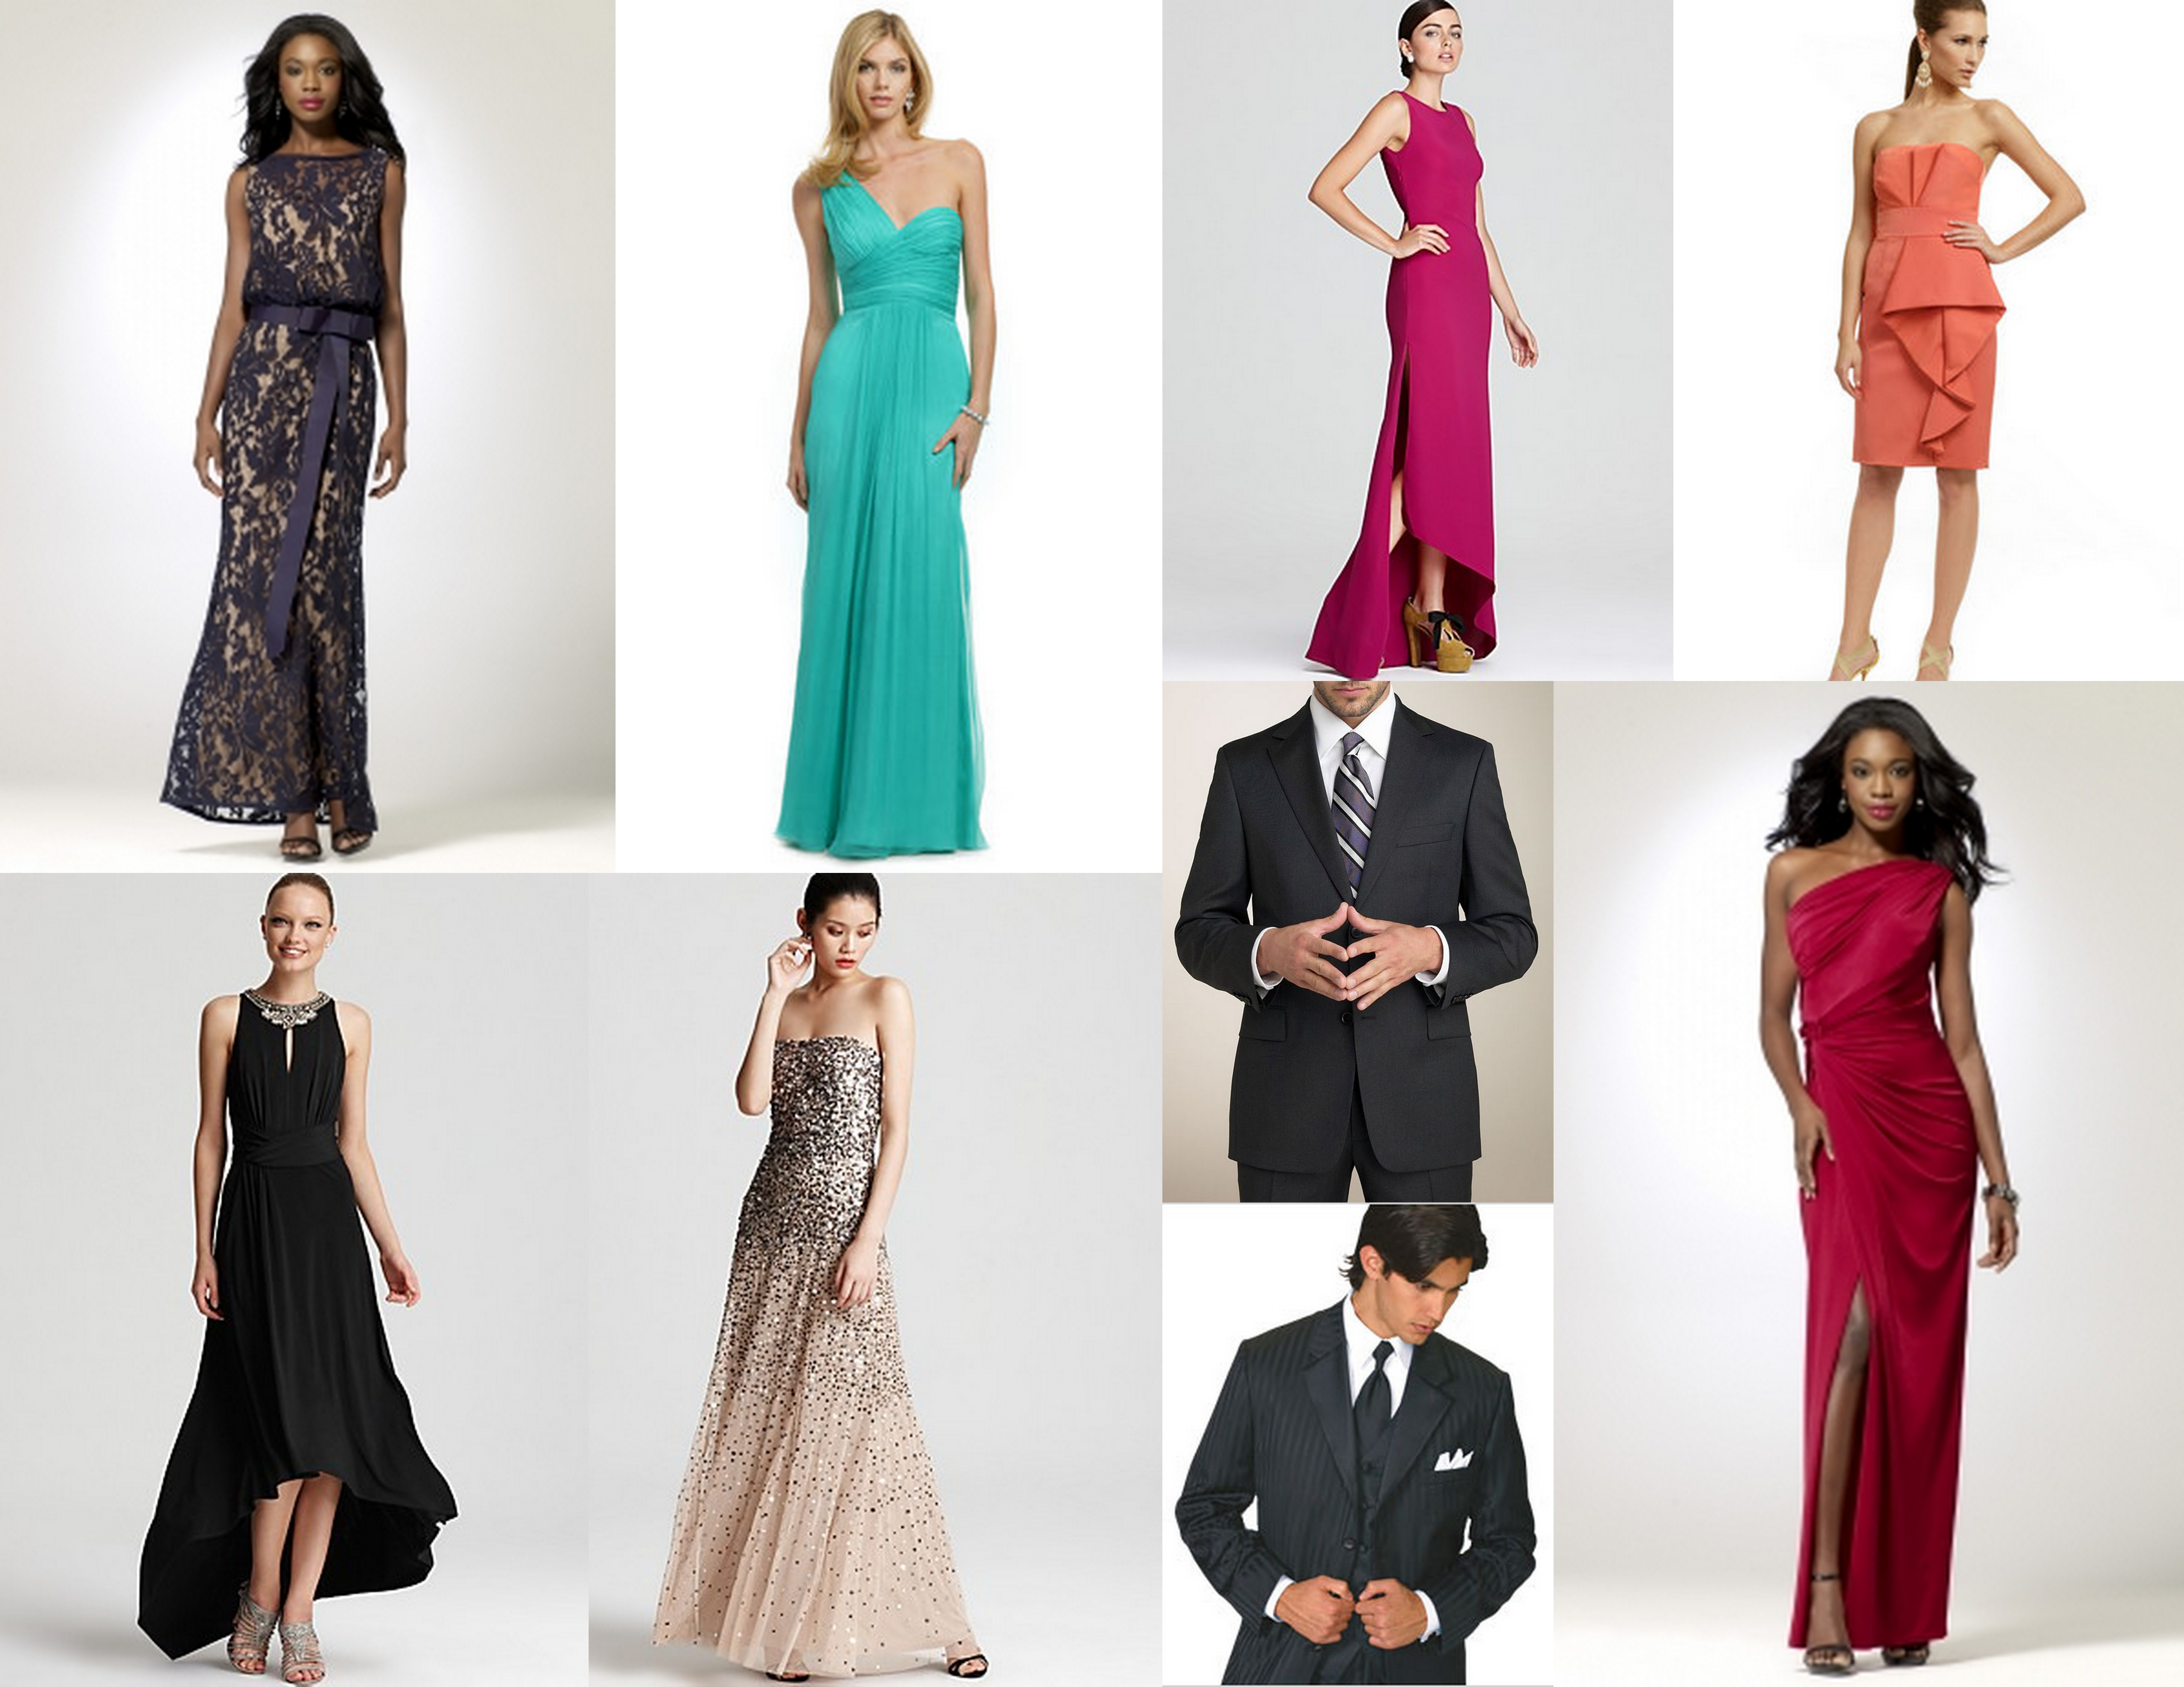 423b40bd14 What Kind Of Dress To Wear To A Black Tie Optional Wedding - Gomes ...